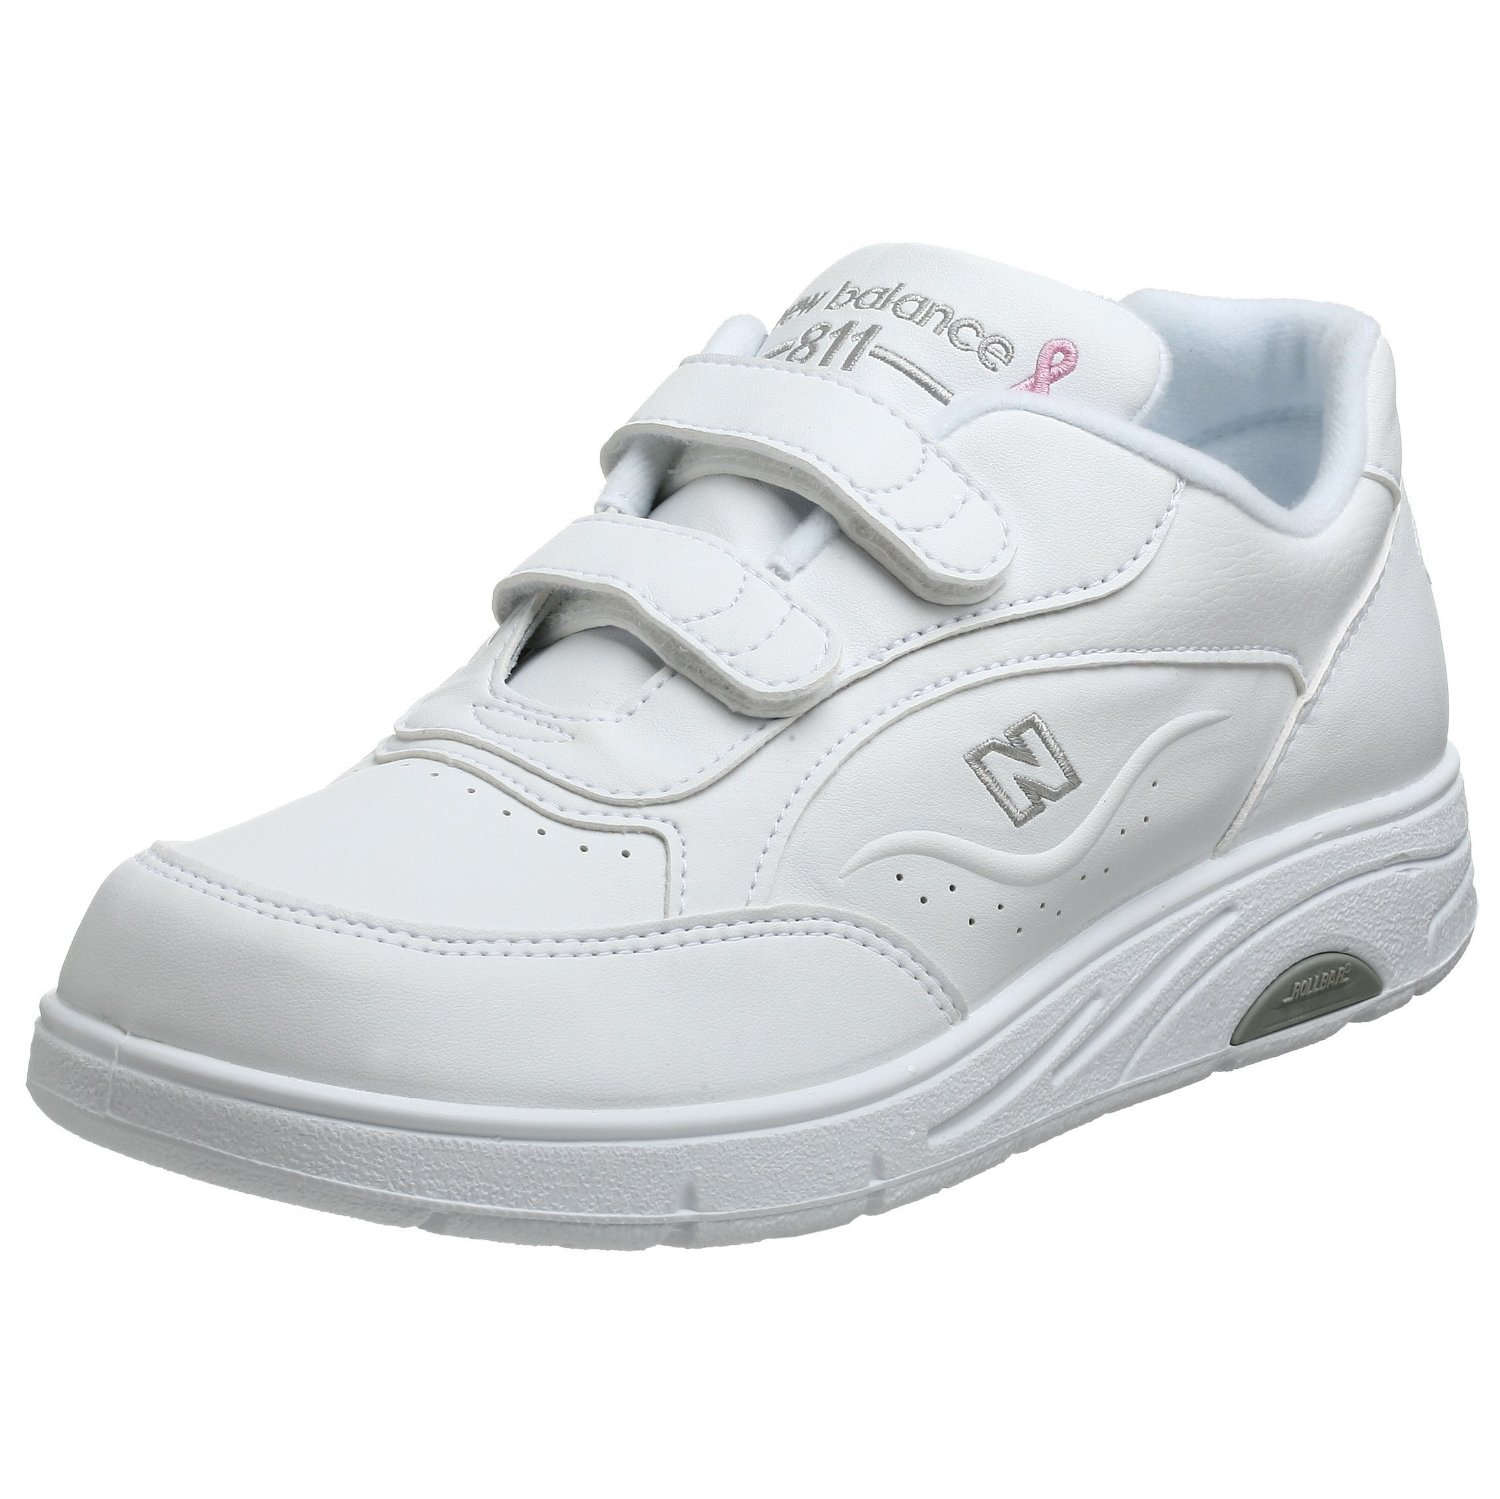 Womens New Balance Shoes Walking